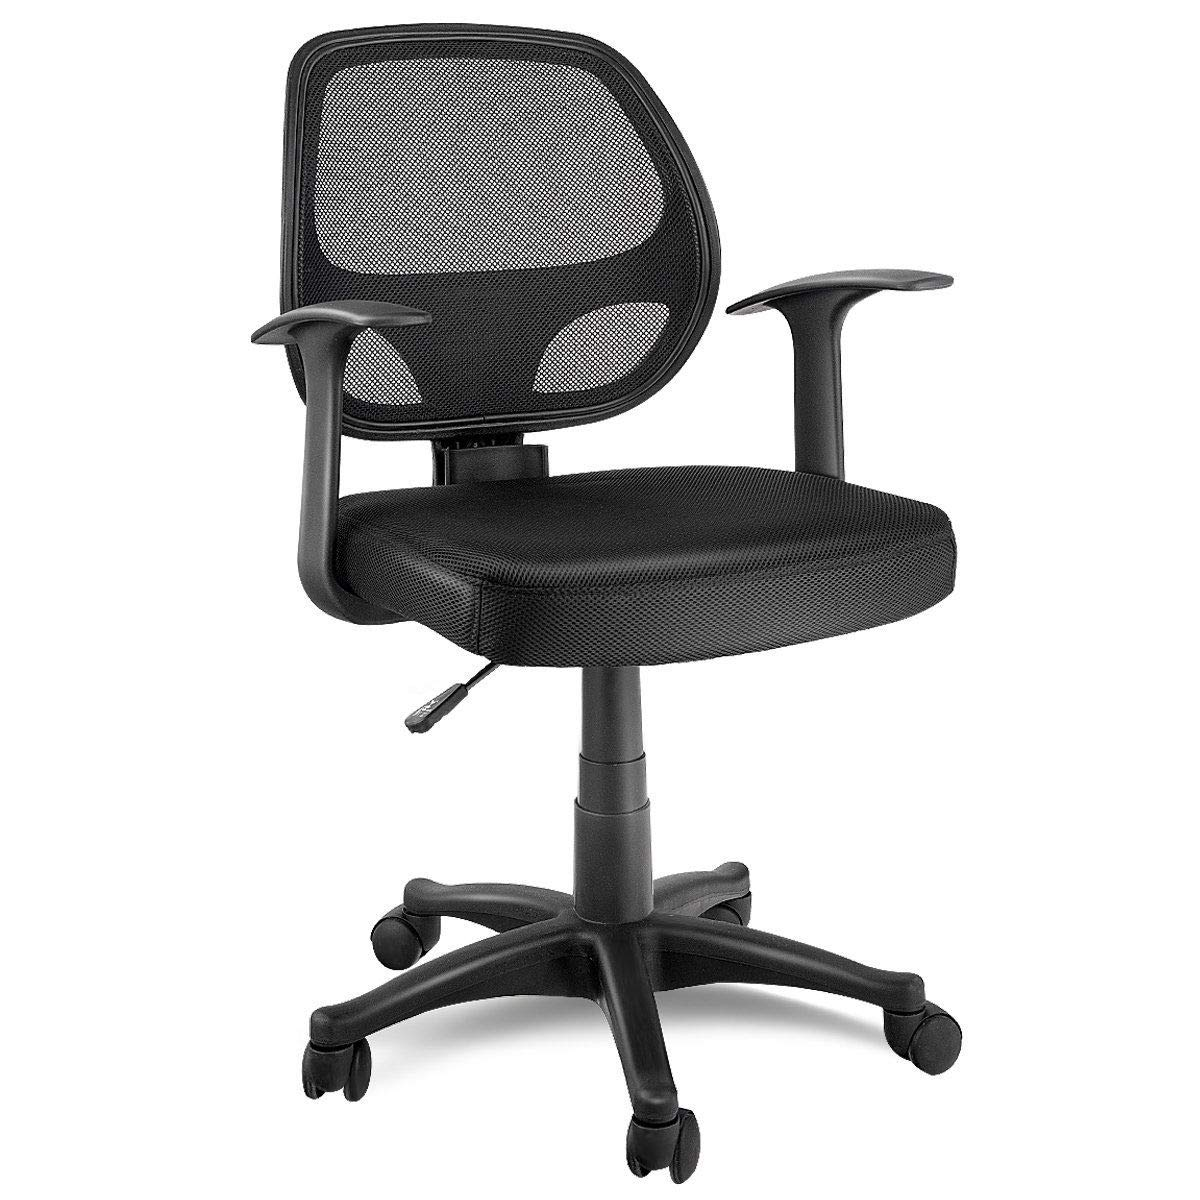 Giantex Mid Back Task Office Chair Mesh Chair Adjustable Seat Height Ergonomic Swivel Computer Desk Chair Executive Office Chair Black Home Kitchen Dprd Tasikmalayakab Go Id